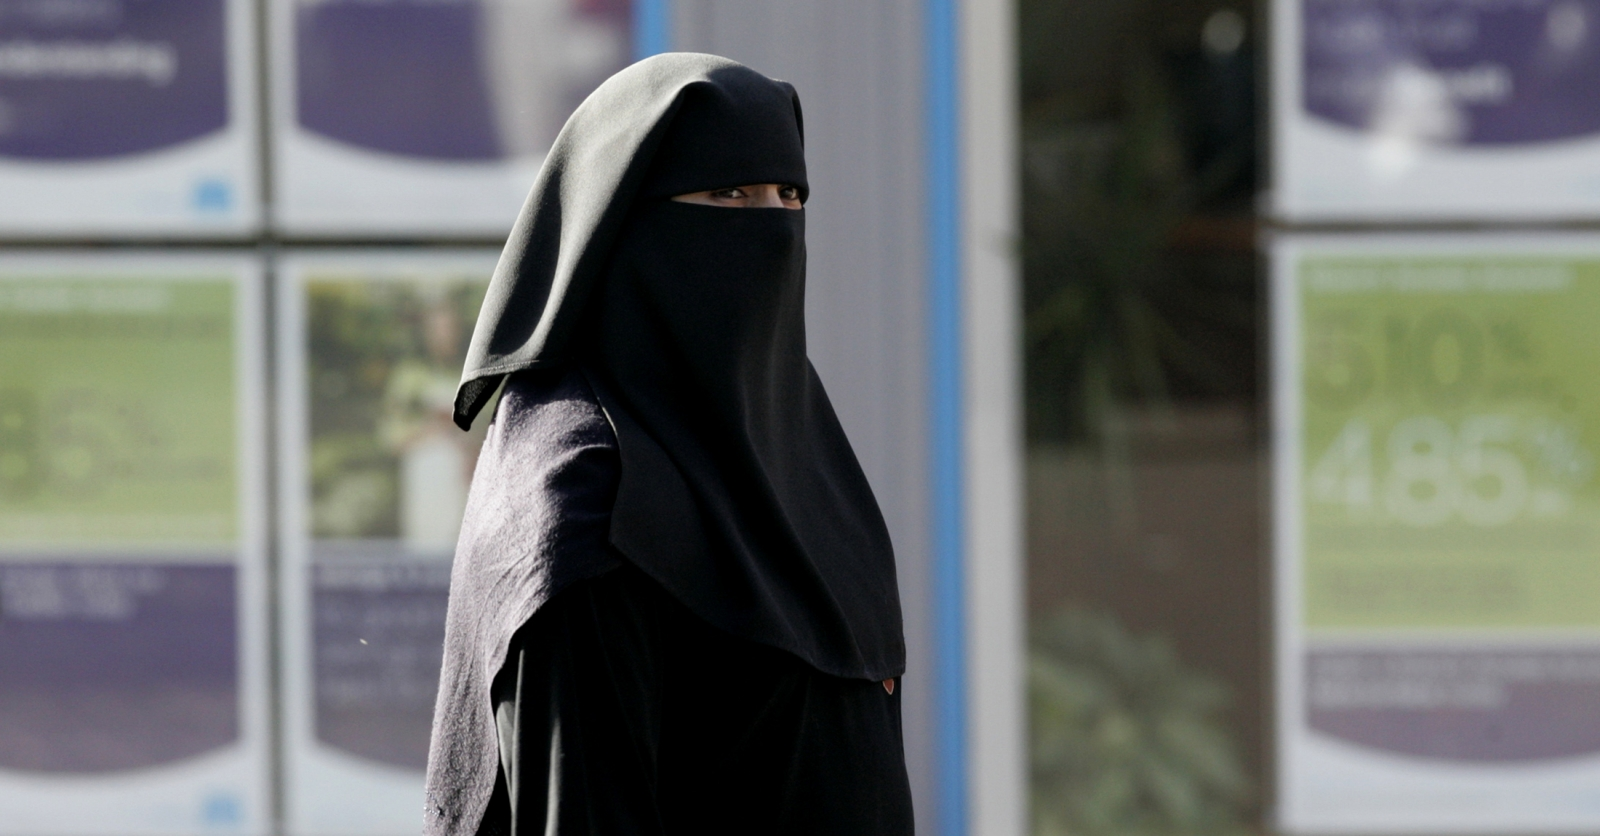 A Muslim woman wearing a niqab in